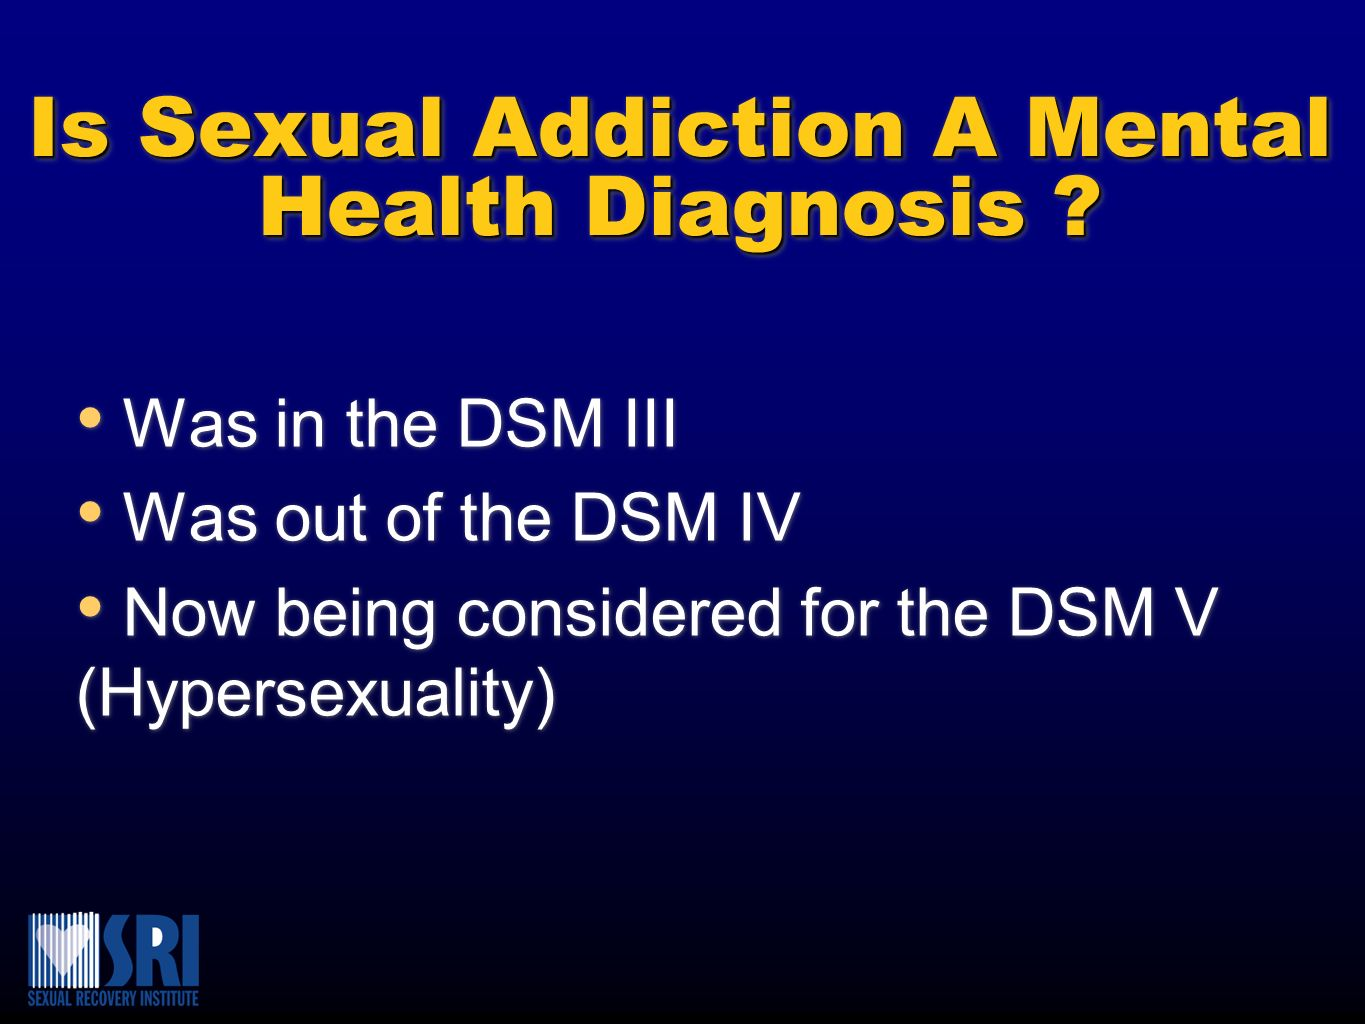 Dsm iv sexual addiction